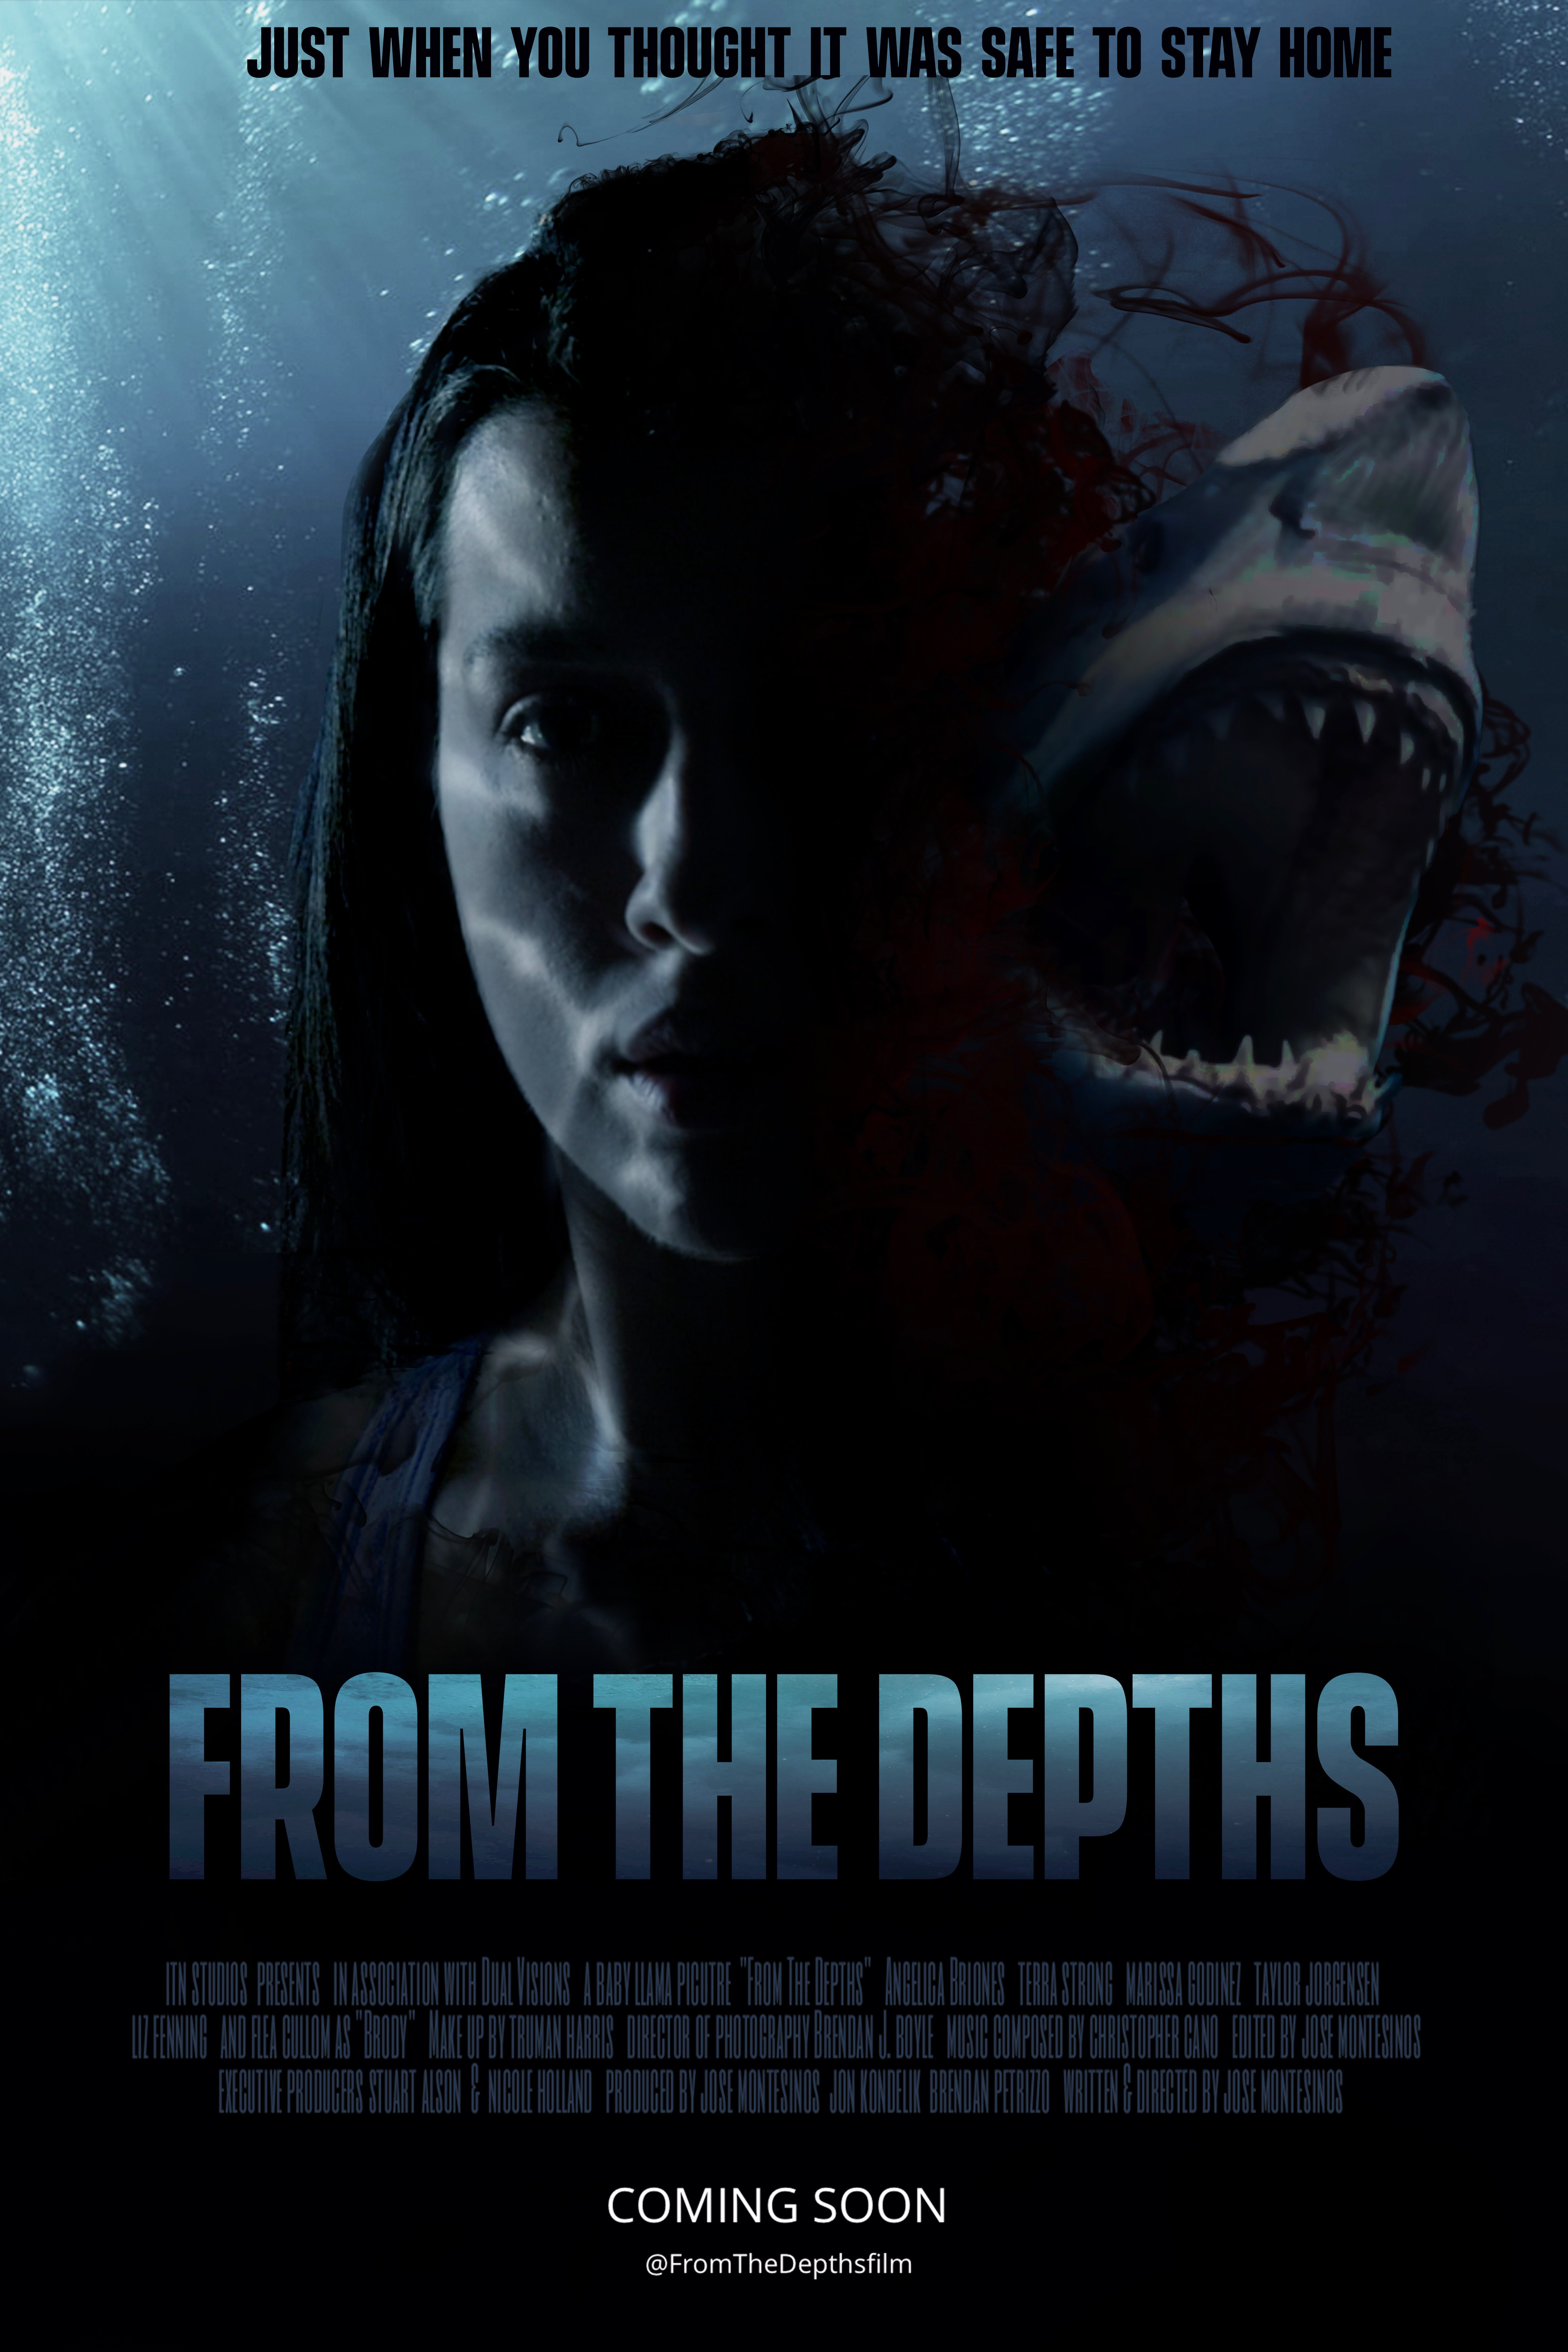 From the Depths hd on soap2day